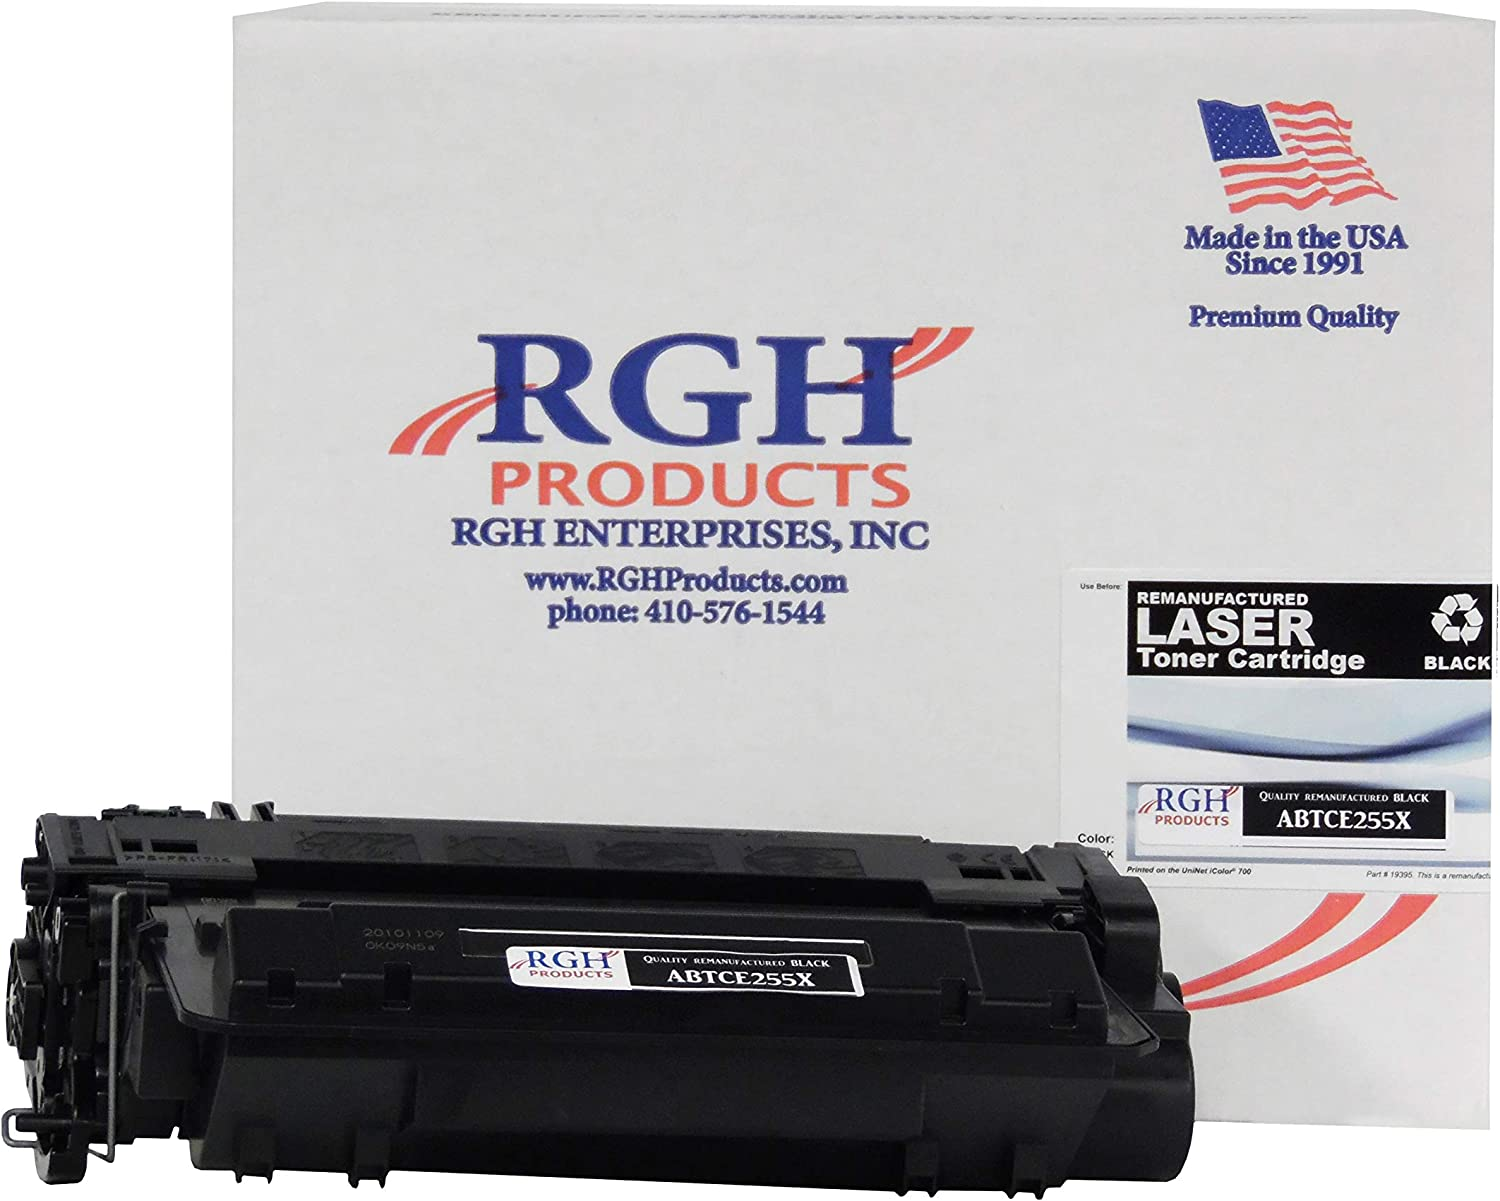 RGH Products Remanufactured Toner Cartridge ABTCE255X Tray Toner Cartridge Replacement for HP CE255X Printer Black